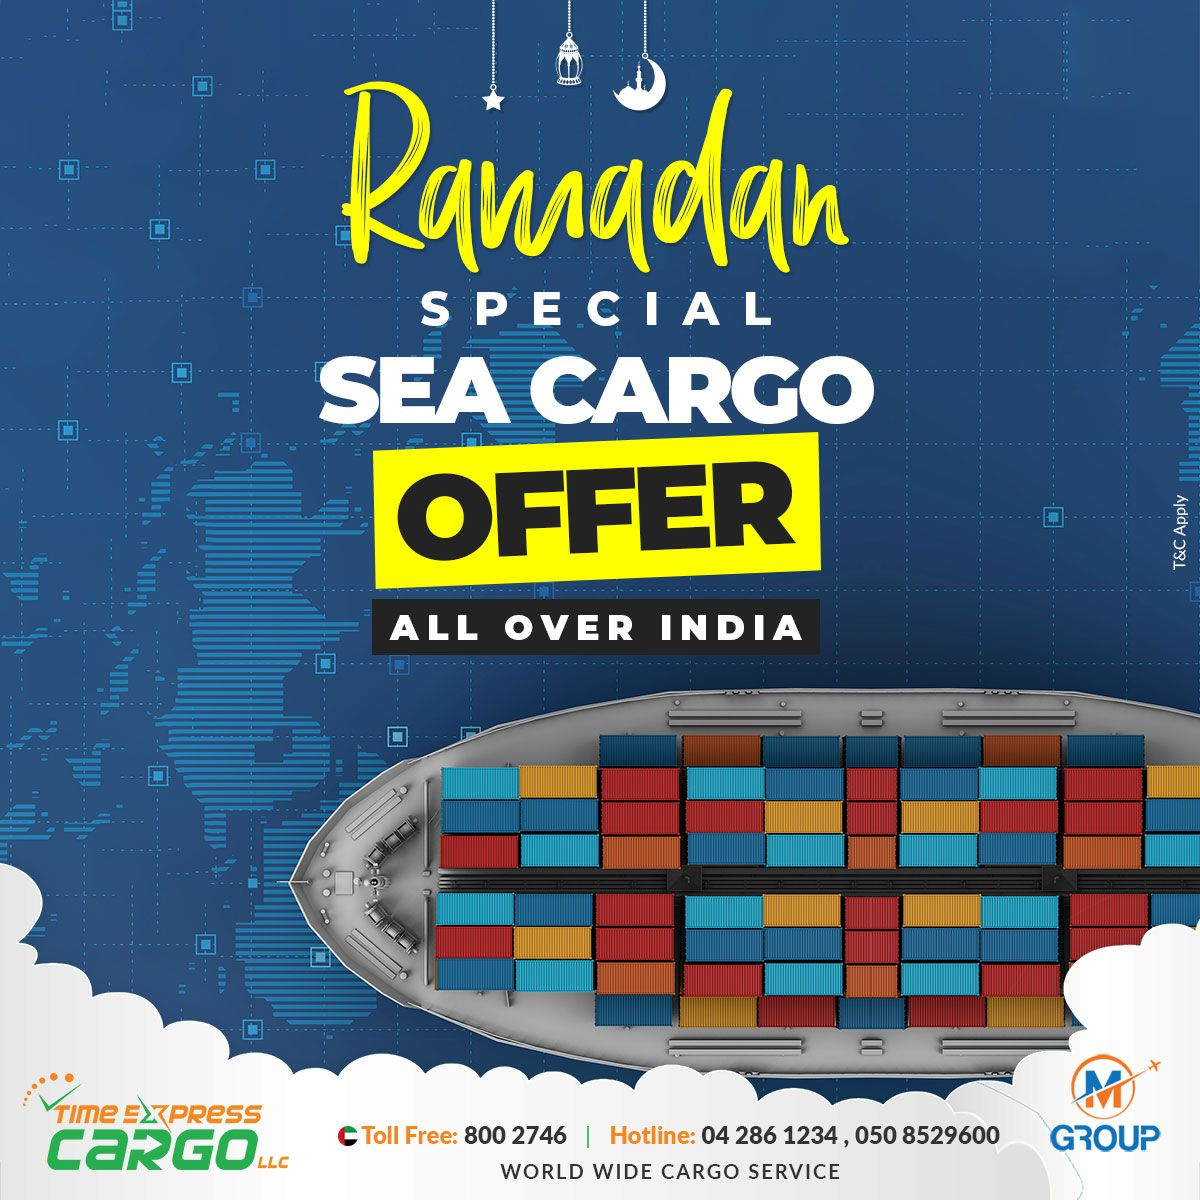 Ramadan Special Sea Cargo Offer All Over India Terms And Conditions May Apply Call Us On 04286 1234 050 8529600 Toll Free In 2020 Cargo Services Air Cargo Airfreight